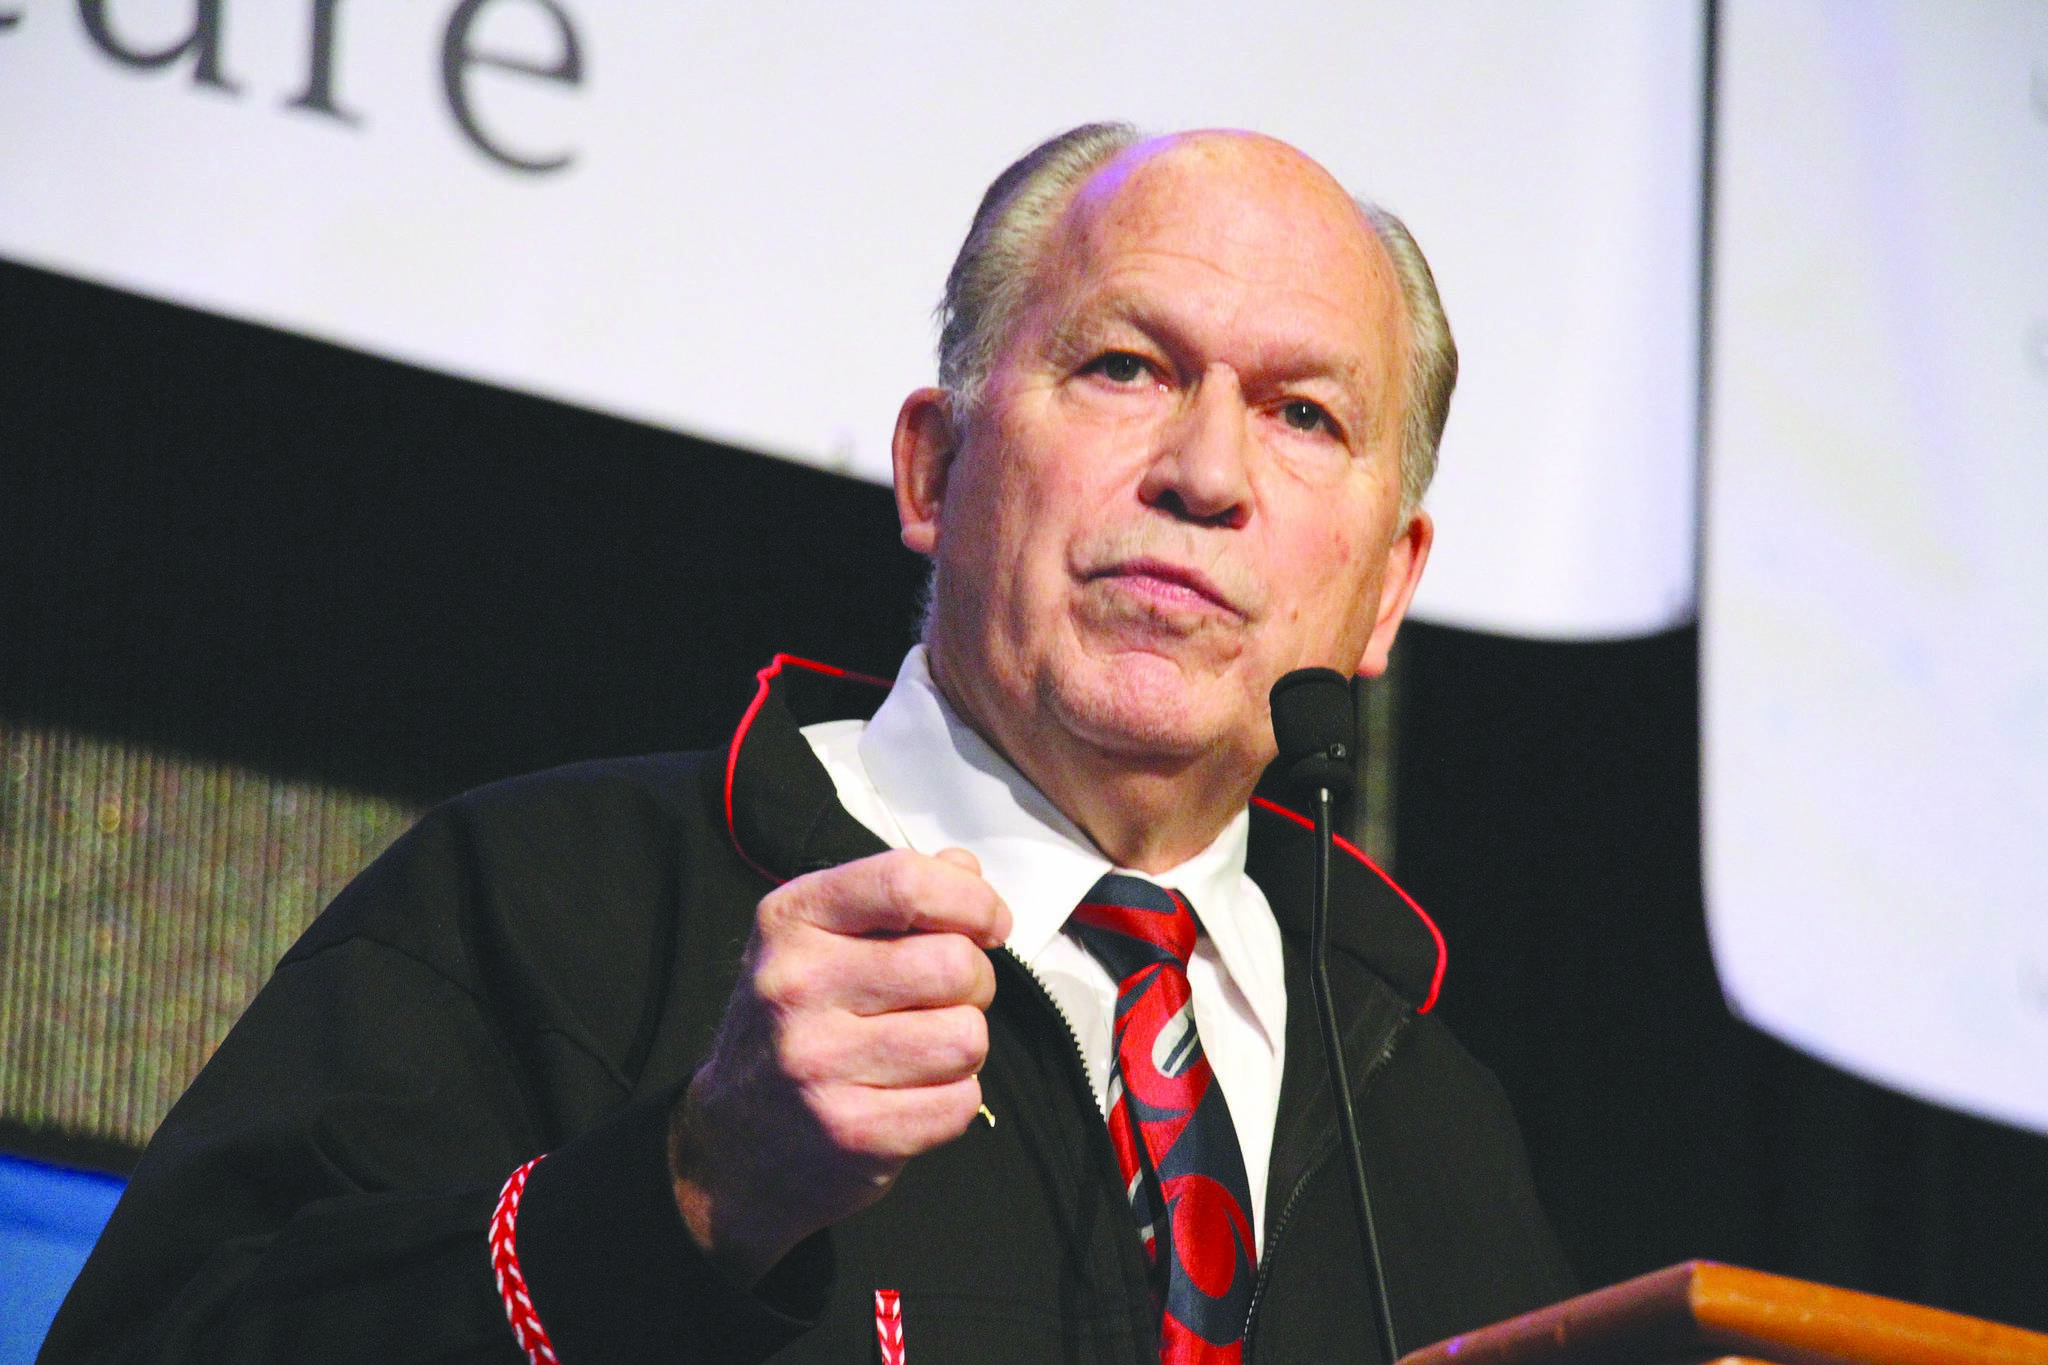 In this Oct. 18, 2018, file photo, then-Alaska Gov. Bill Walker addresses delegates at the annual Alaska Federation of Natives conference in Anchorage, Alaska. (AP Photo/Mark Thiessen, File)